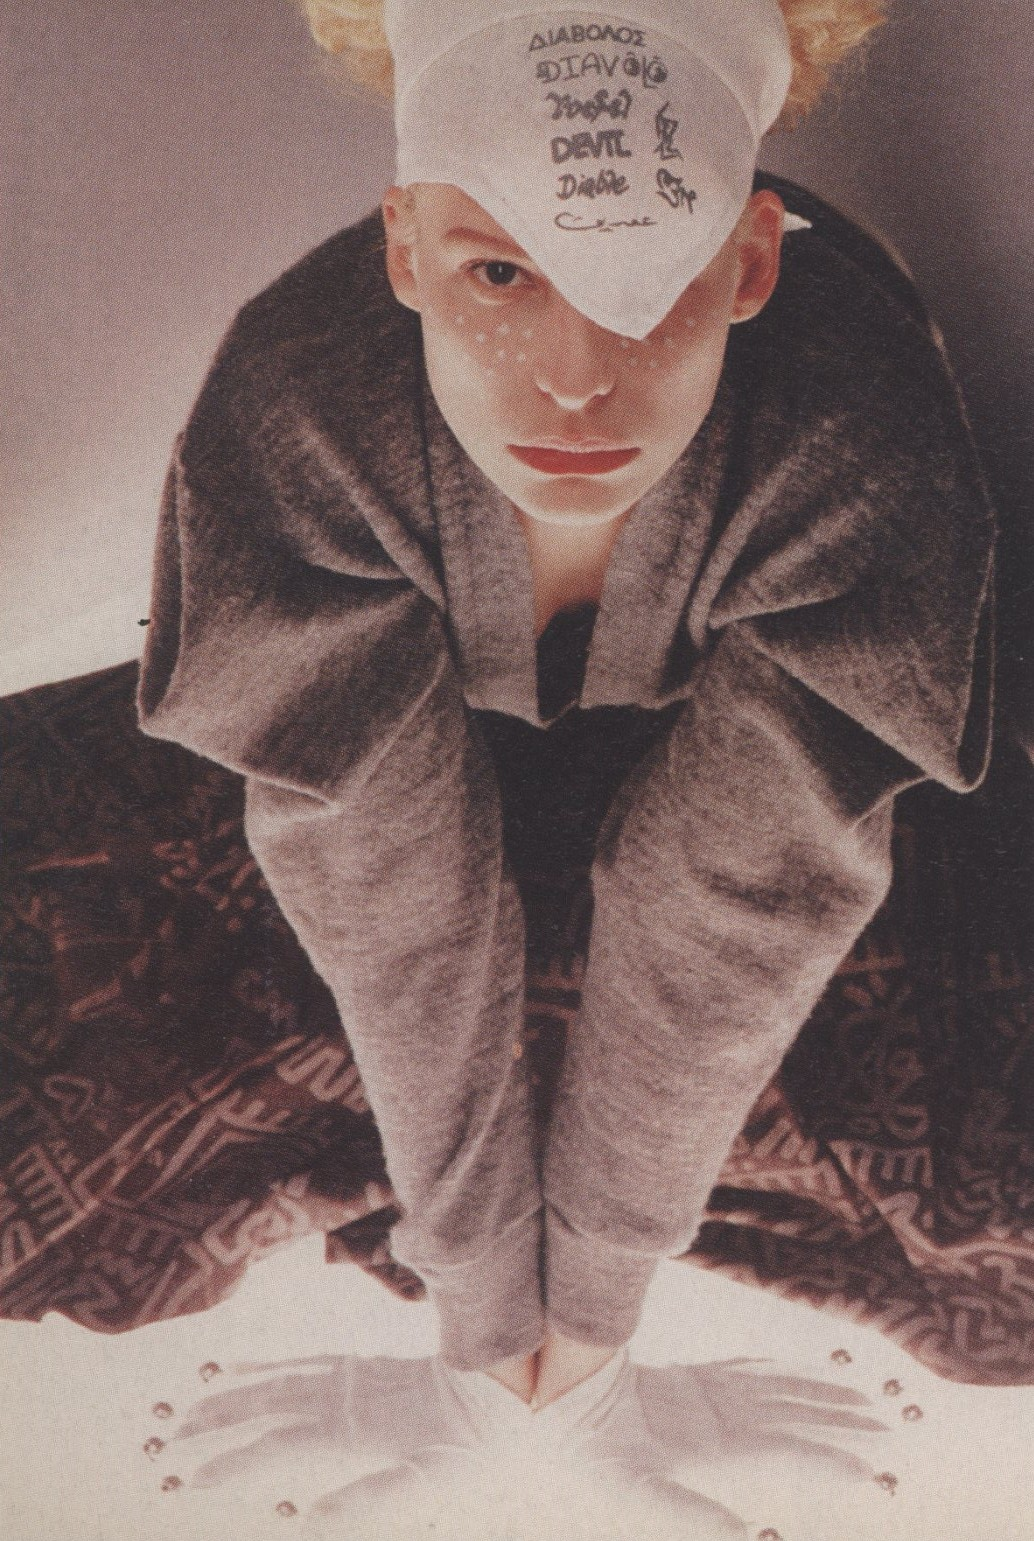 VIVIENNE WESTWOOD | PHOTOGRAPHY CARRIE DONOVAN | STYLING PAUL FRECKER | THE FACE N. 85 | MAY 1987